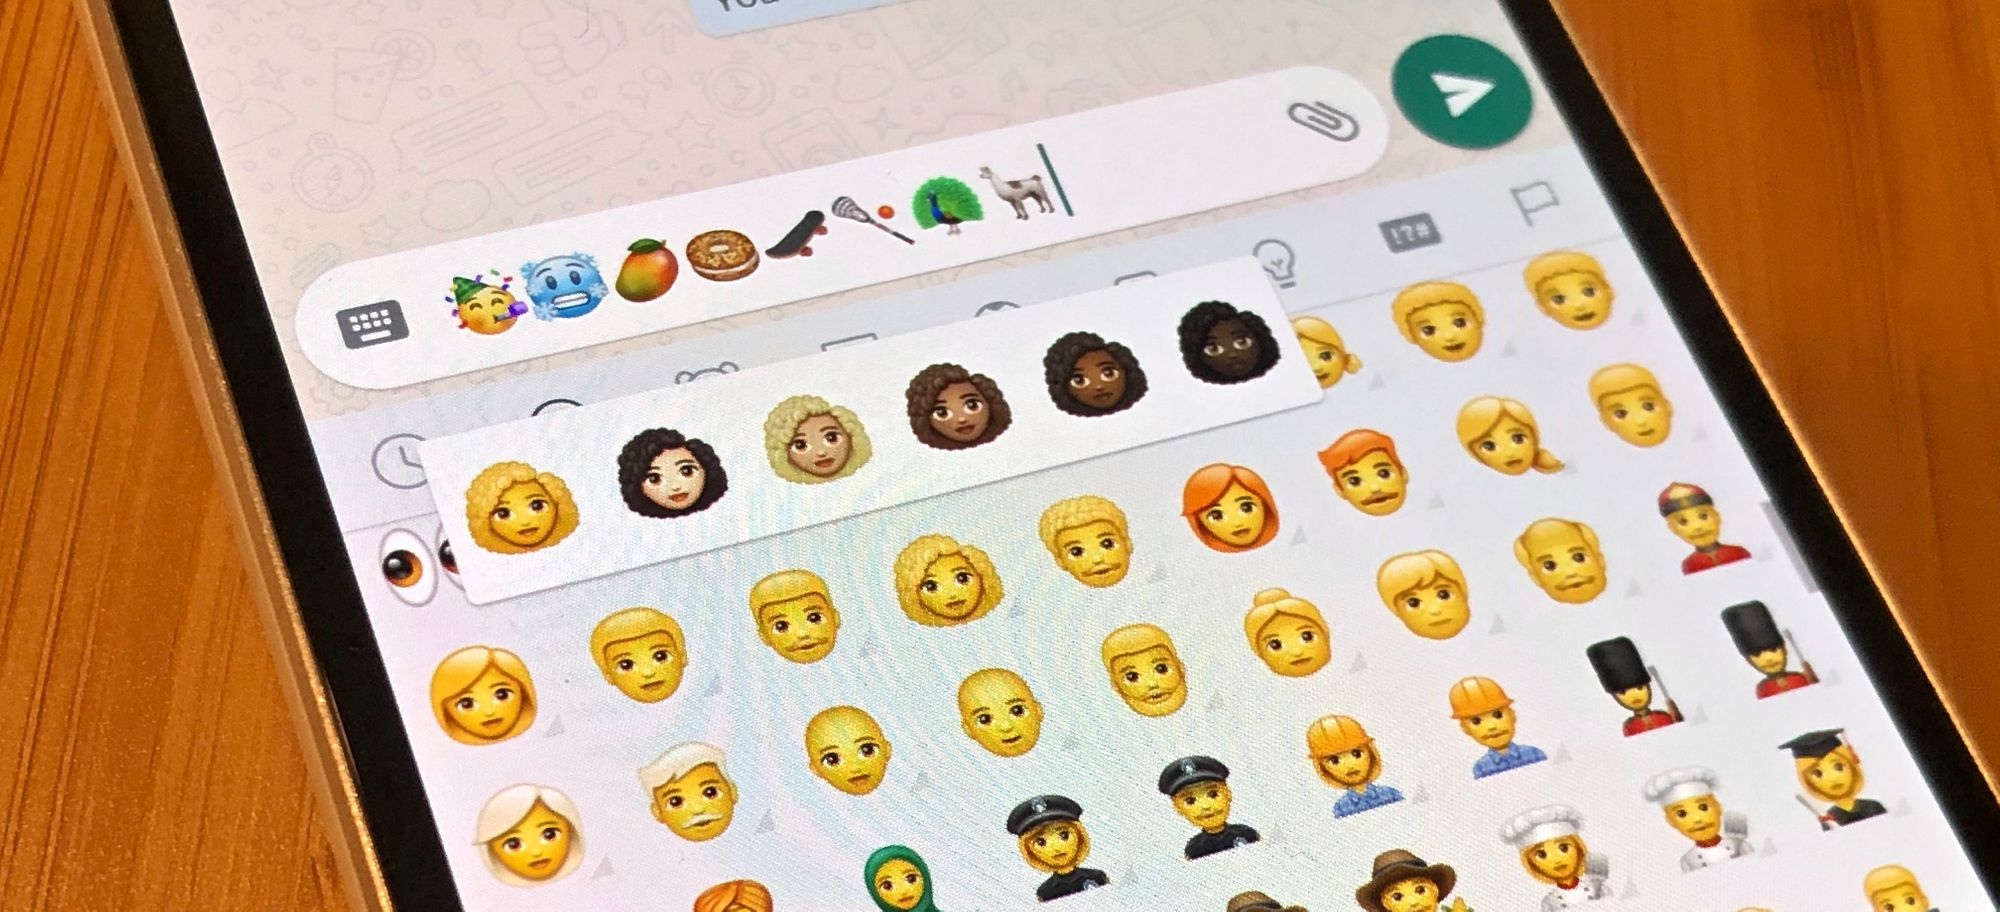 WhatsApp 2.19.7 Emoji Changelog